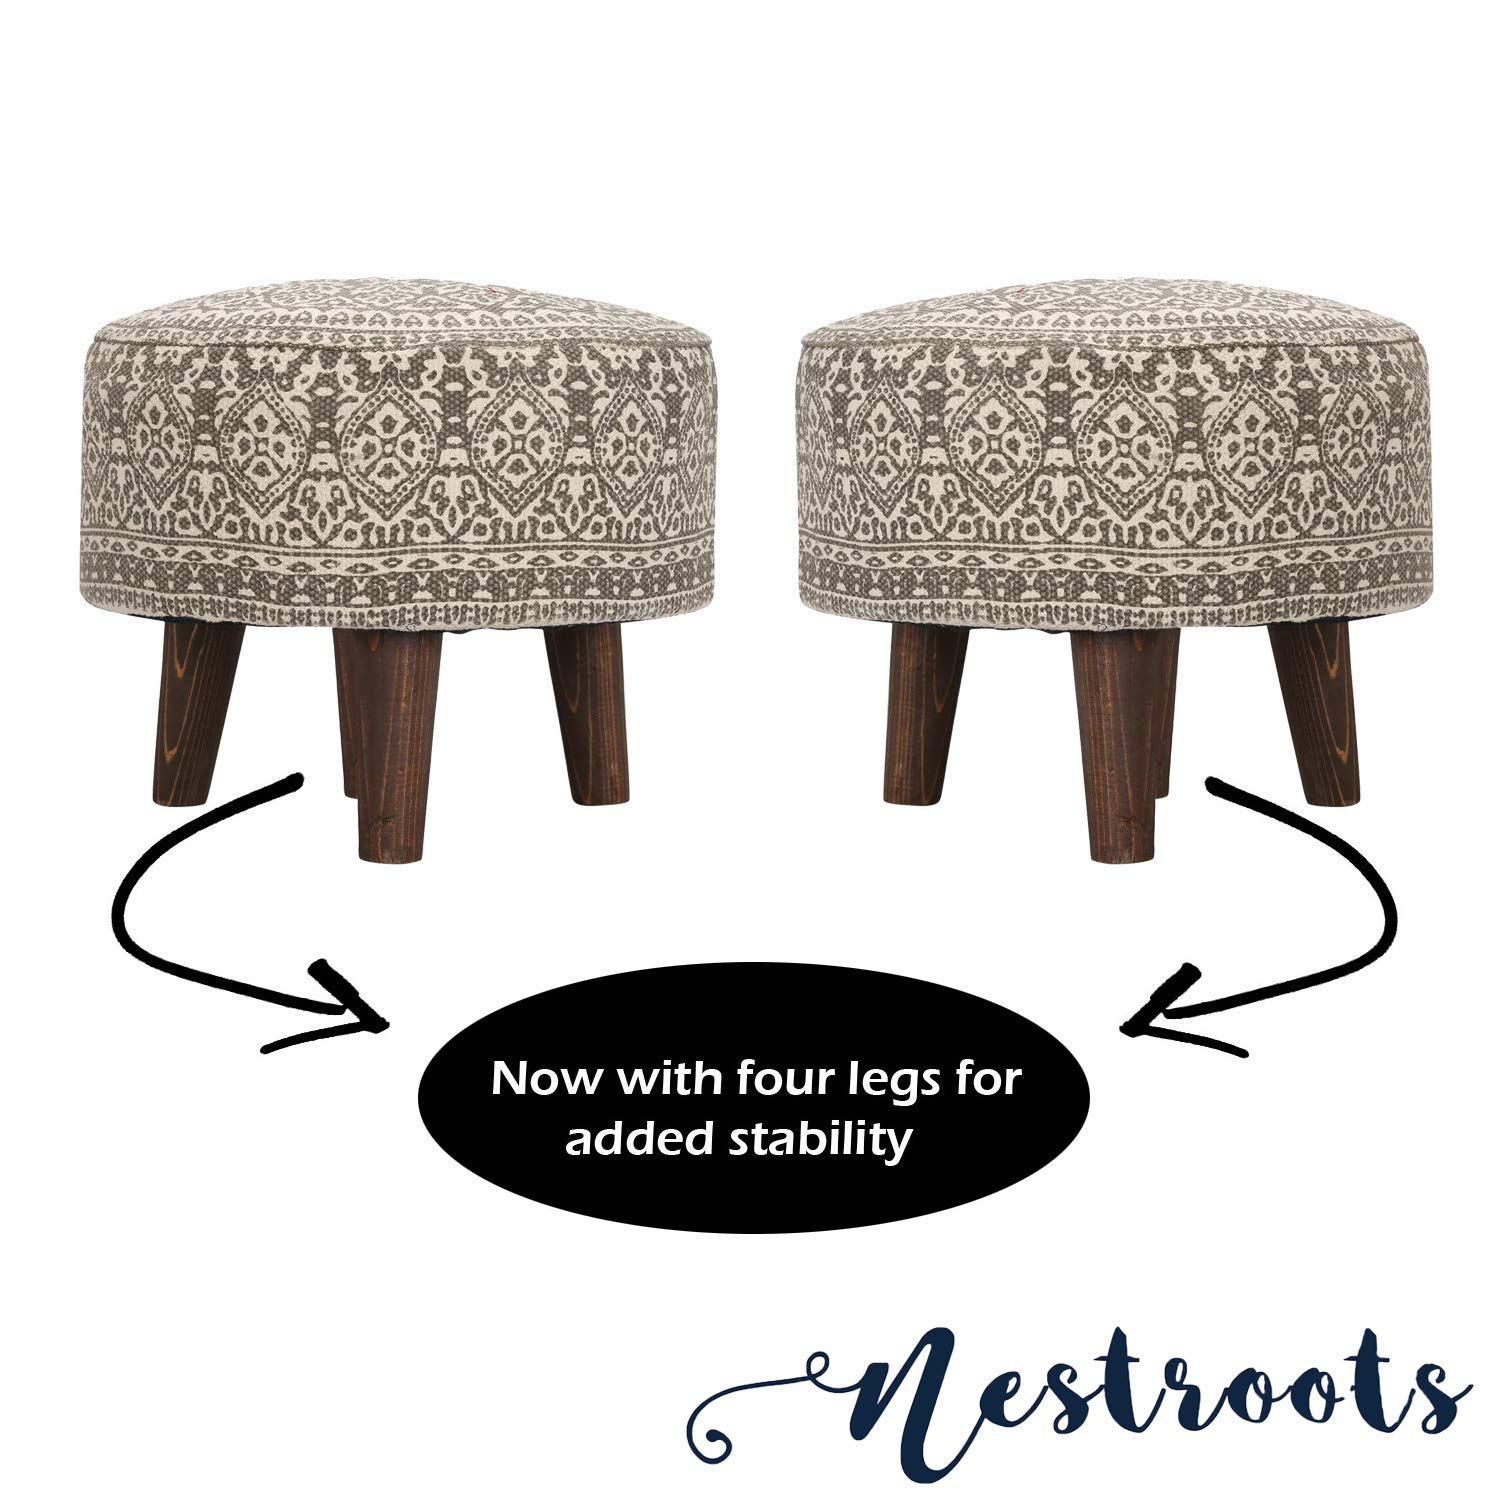 Nestroots Printed Ottoman Cushion Footrest Stool Pouf - 4